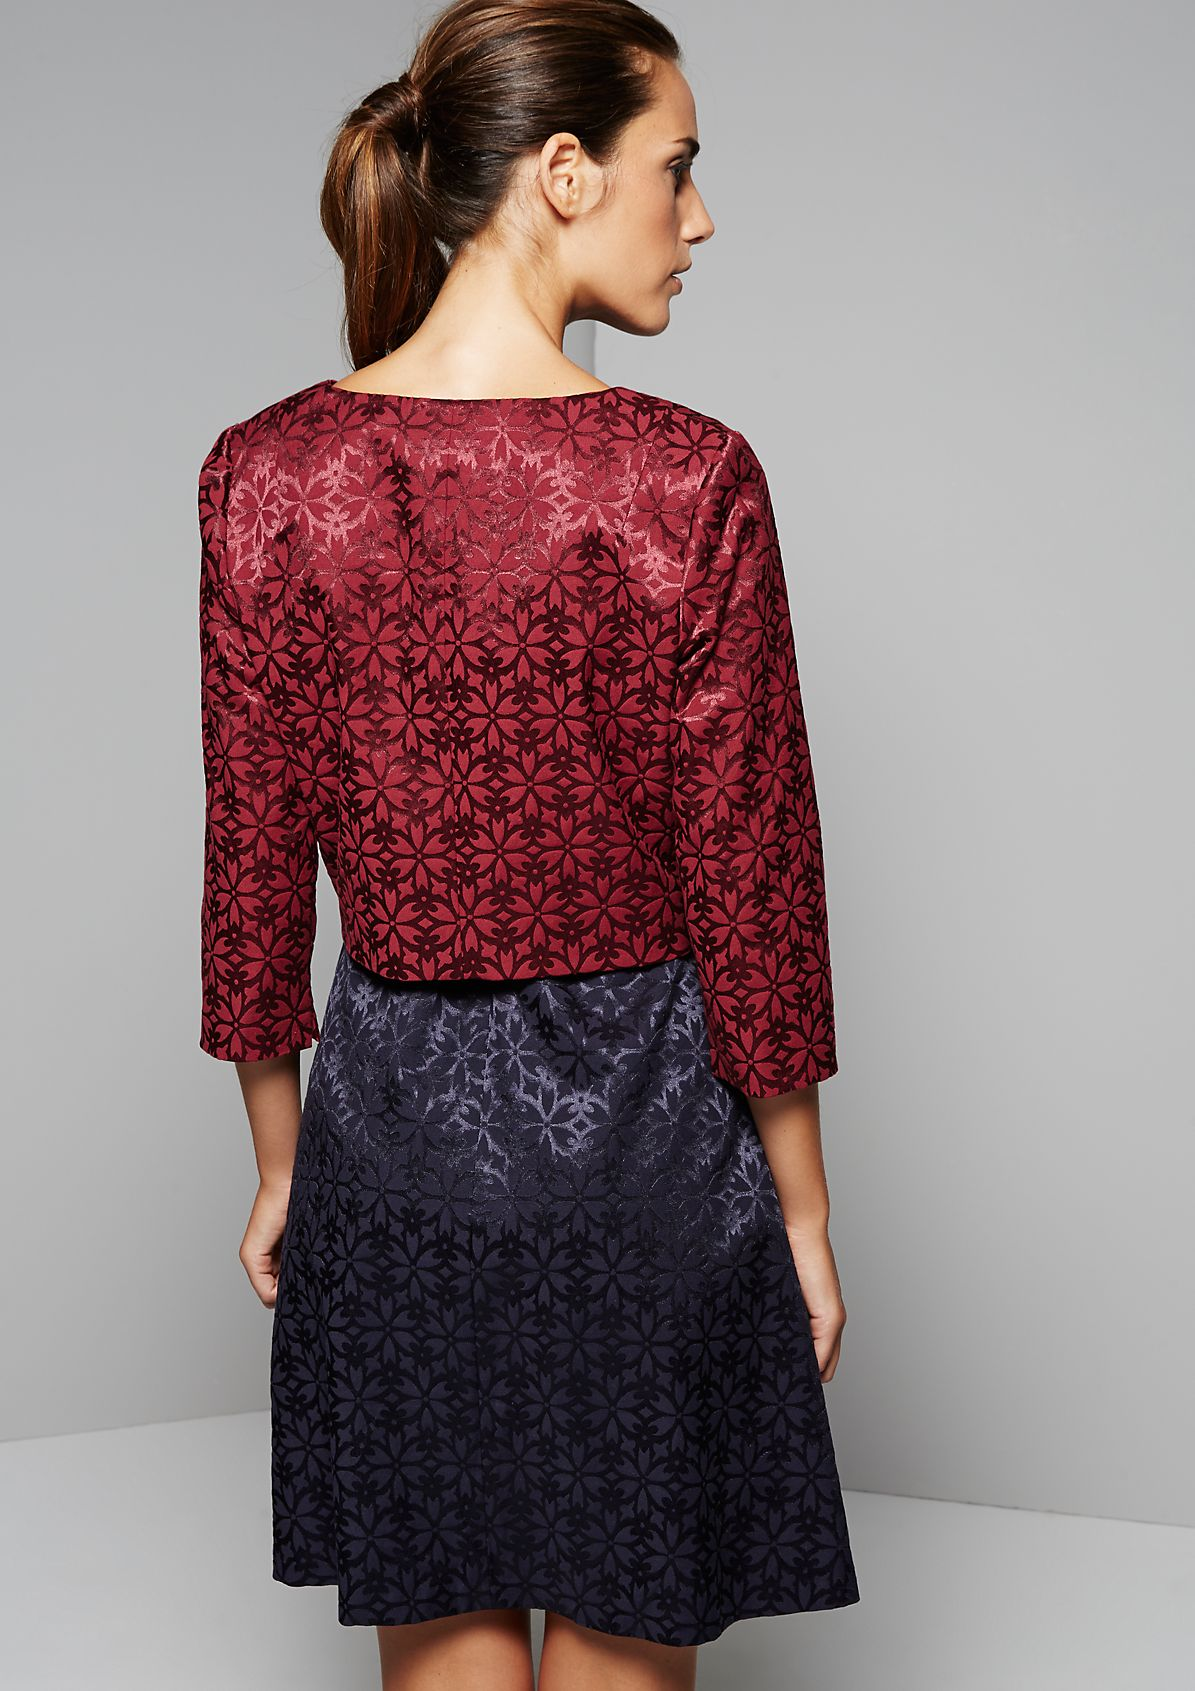 Elegant cropped blazer with a sophisticated jacquard pattern from s.Oliver